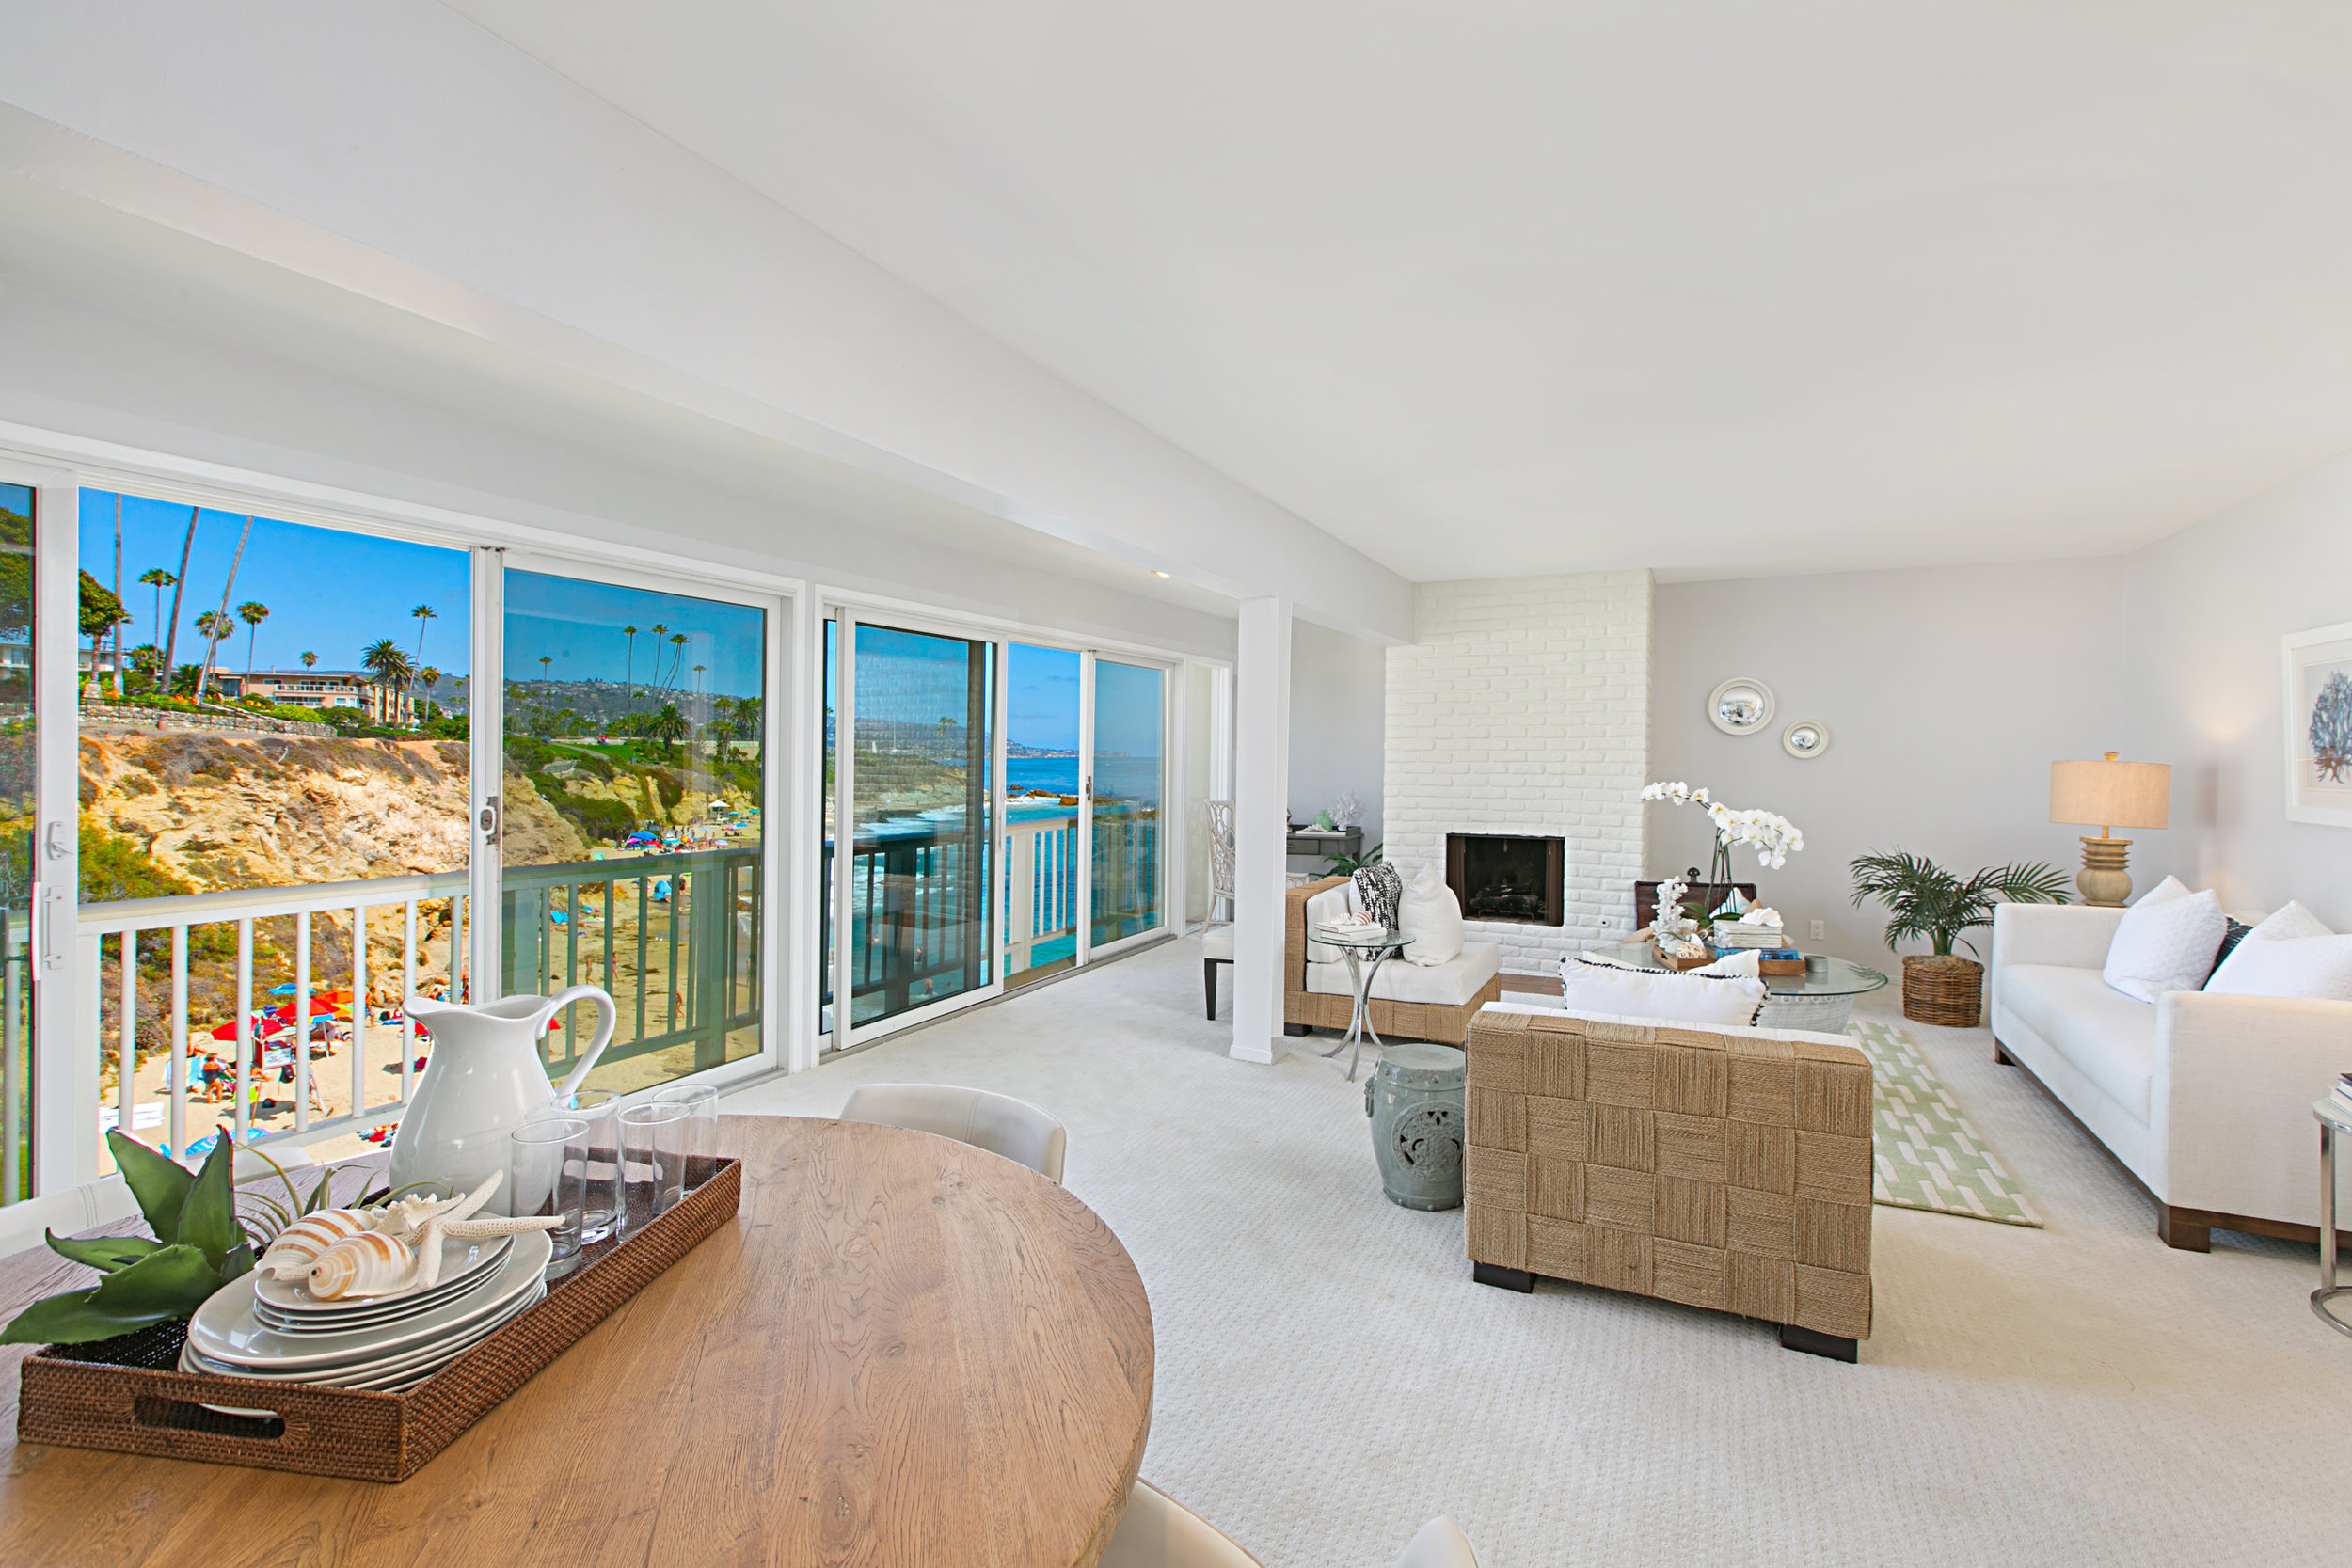 THE LAGUNA BEACH DREAM - ...is the way of life.949.922.8490